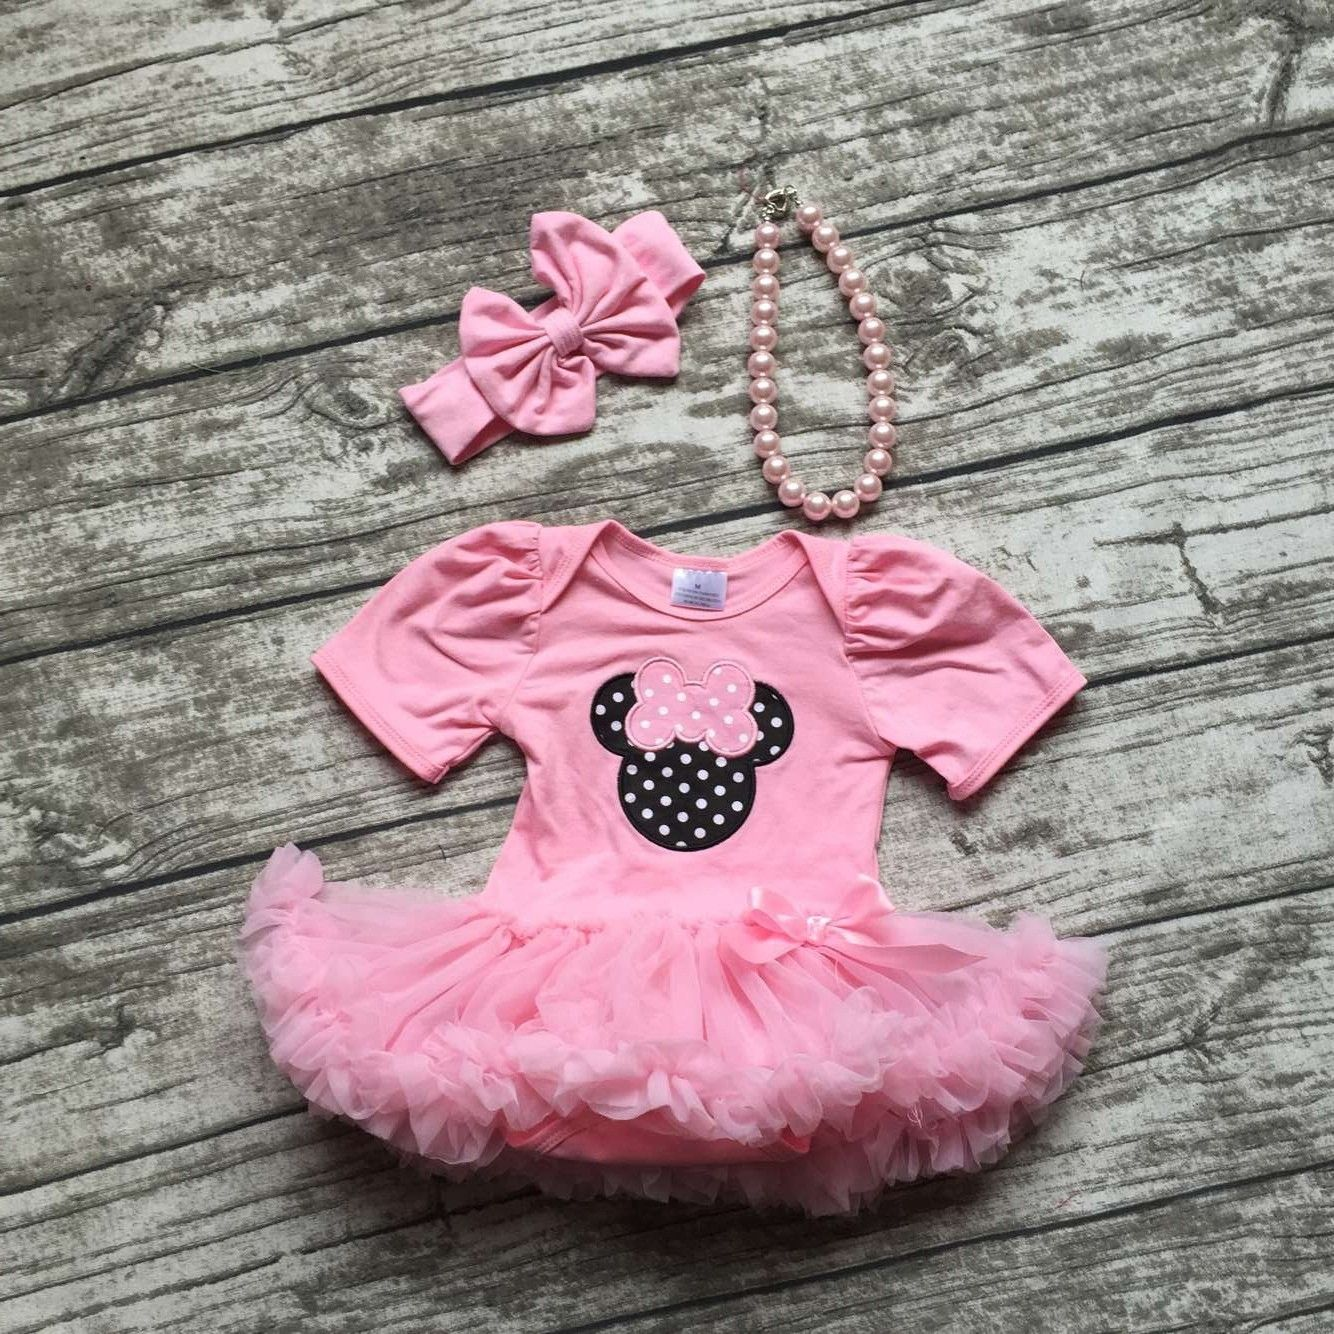 Perfect dress for your little girl's #birthday party. Dress up your child with light pink tutu dress that makes her look fabulous. Shop @ http://bit.ly/2fZ7GCq